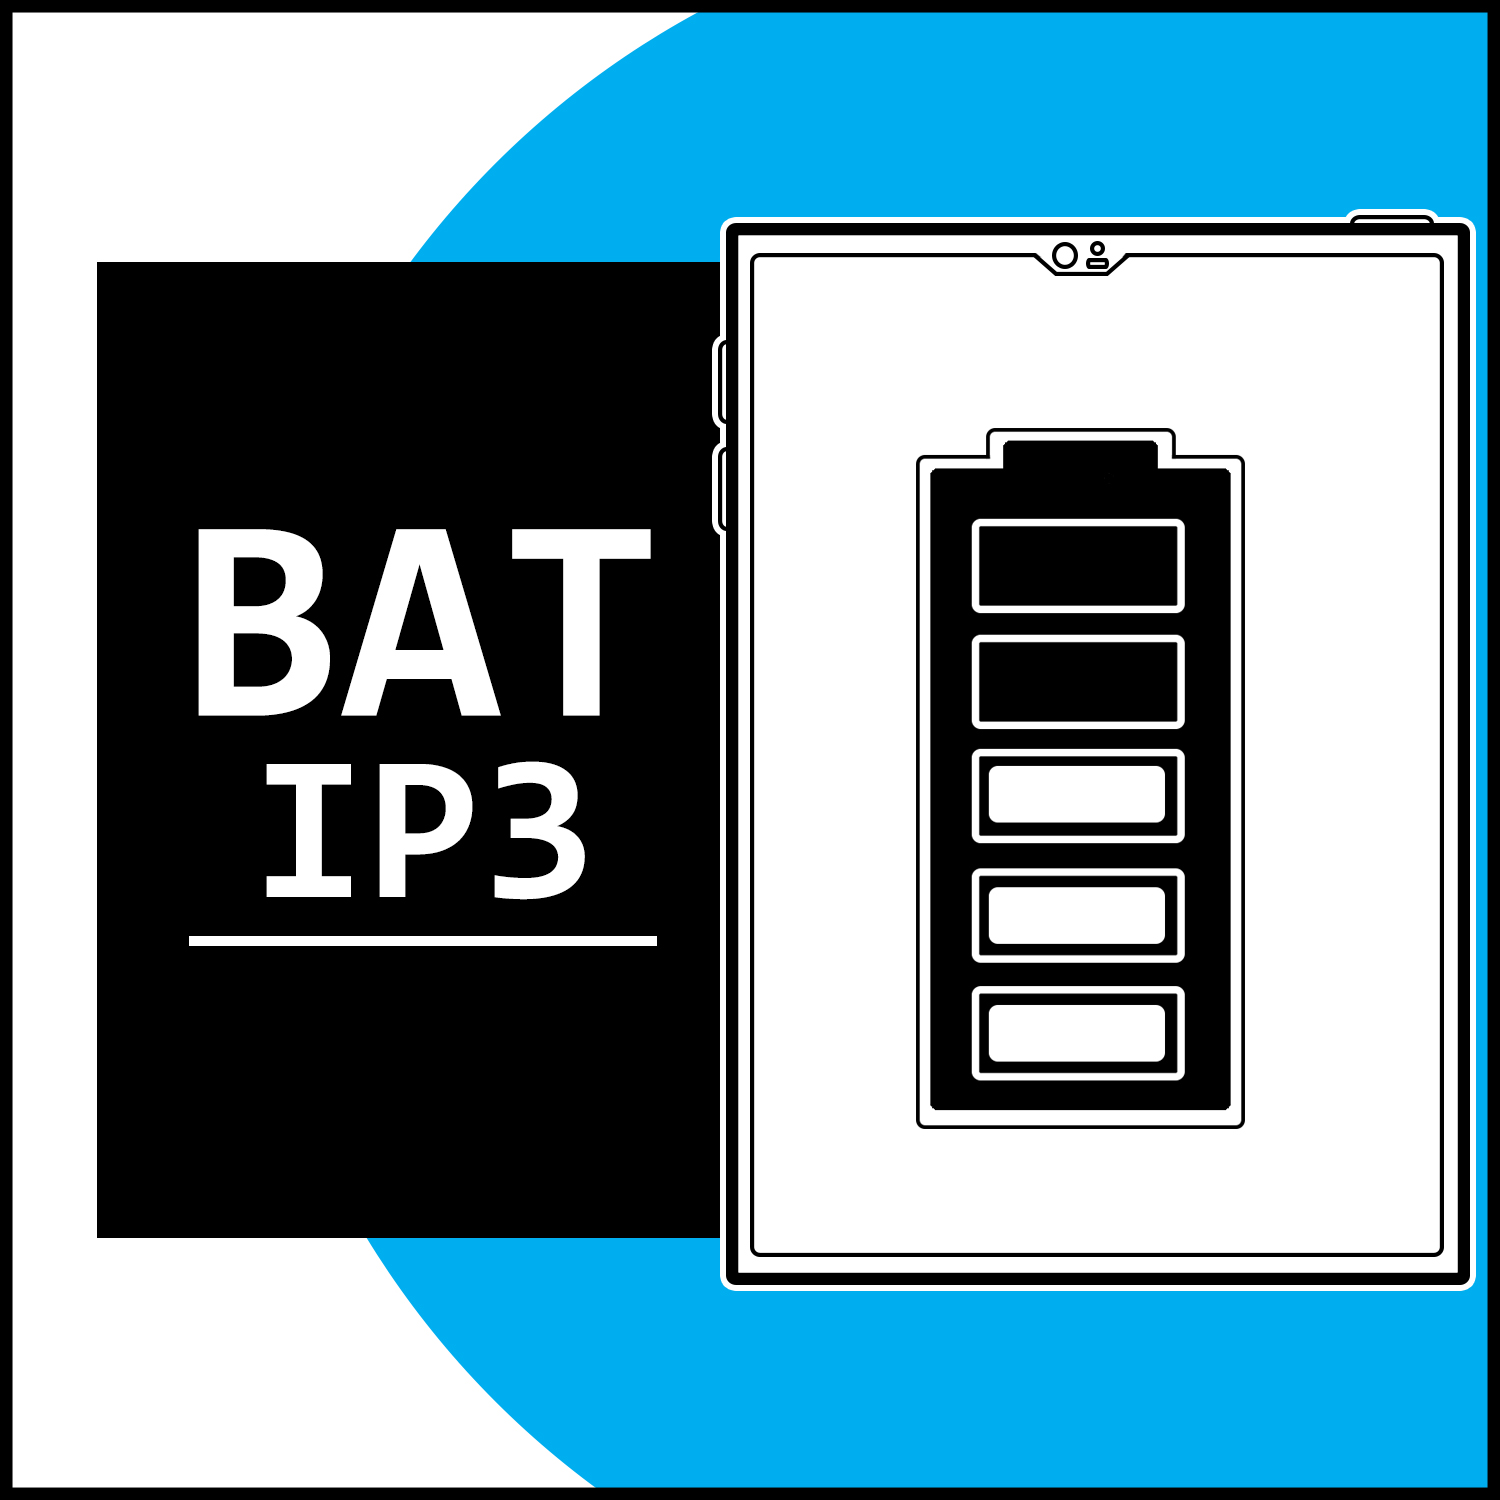 ip3 BAT logo.jpg